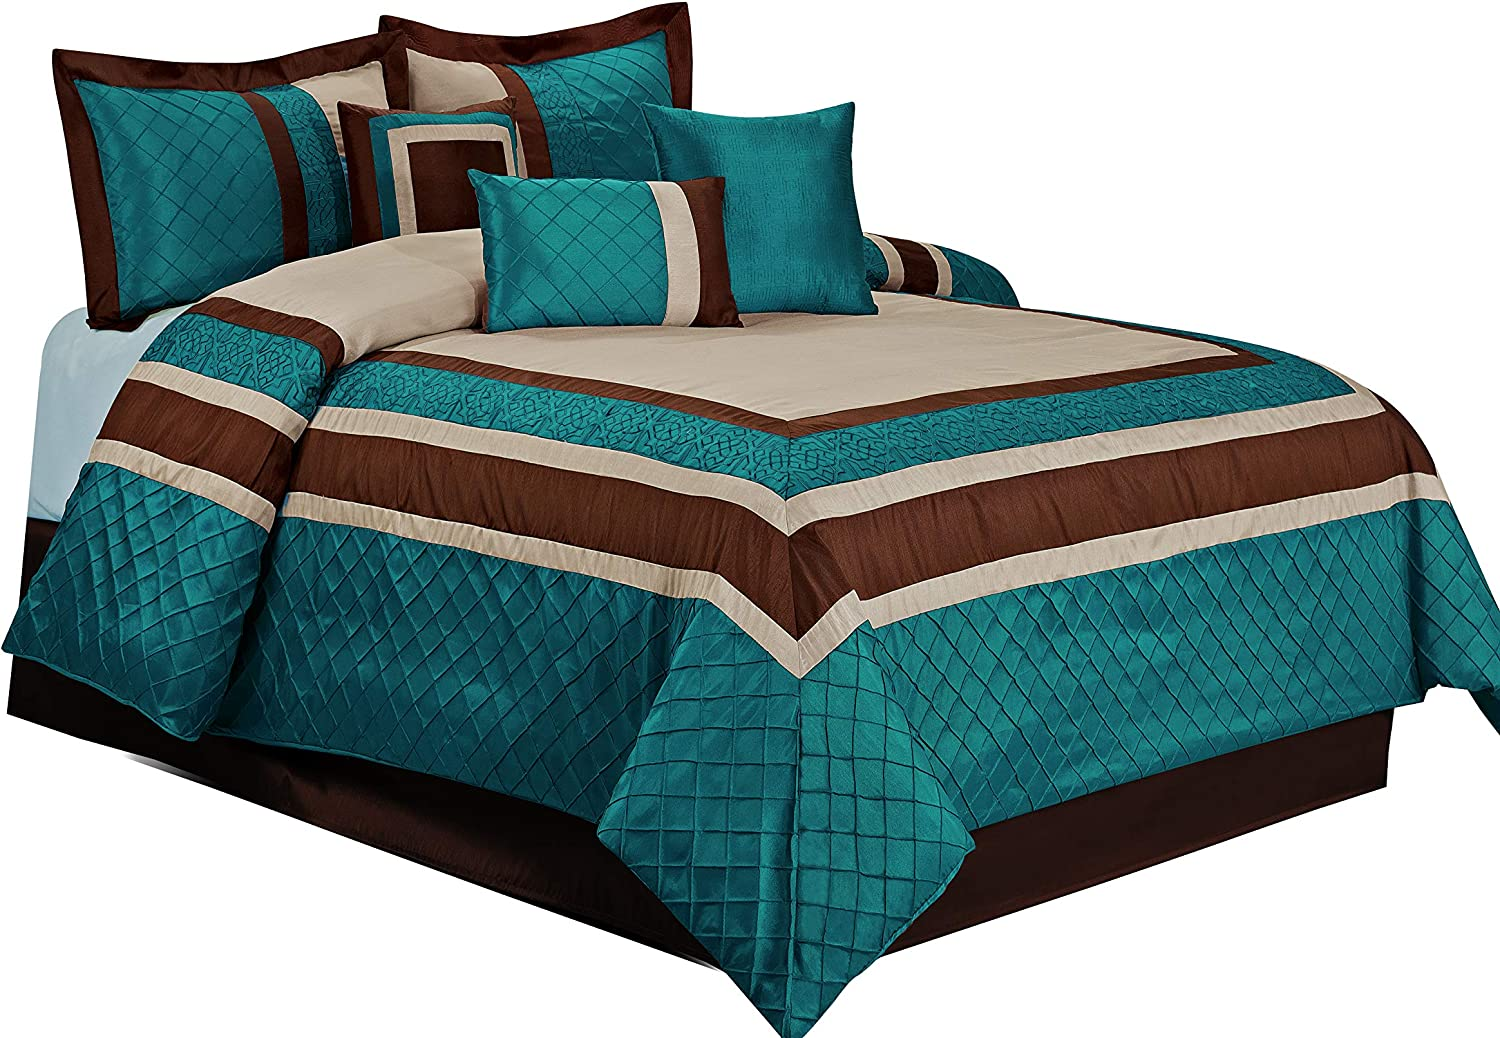 HIG 7 Piece Comforter Set Queen-Teal Series Patchwork Diamond Pintuck-MYA Bed in A Bag Queen Size-Soft, Hypoallergenic,Fade Resistant-1 Comforter,2 Shams,3 Decorative Pillows,1 Bedskirt